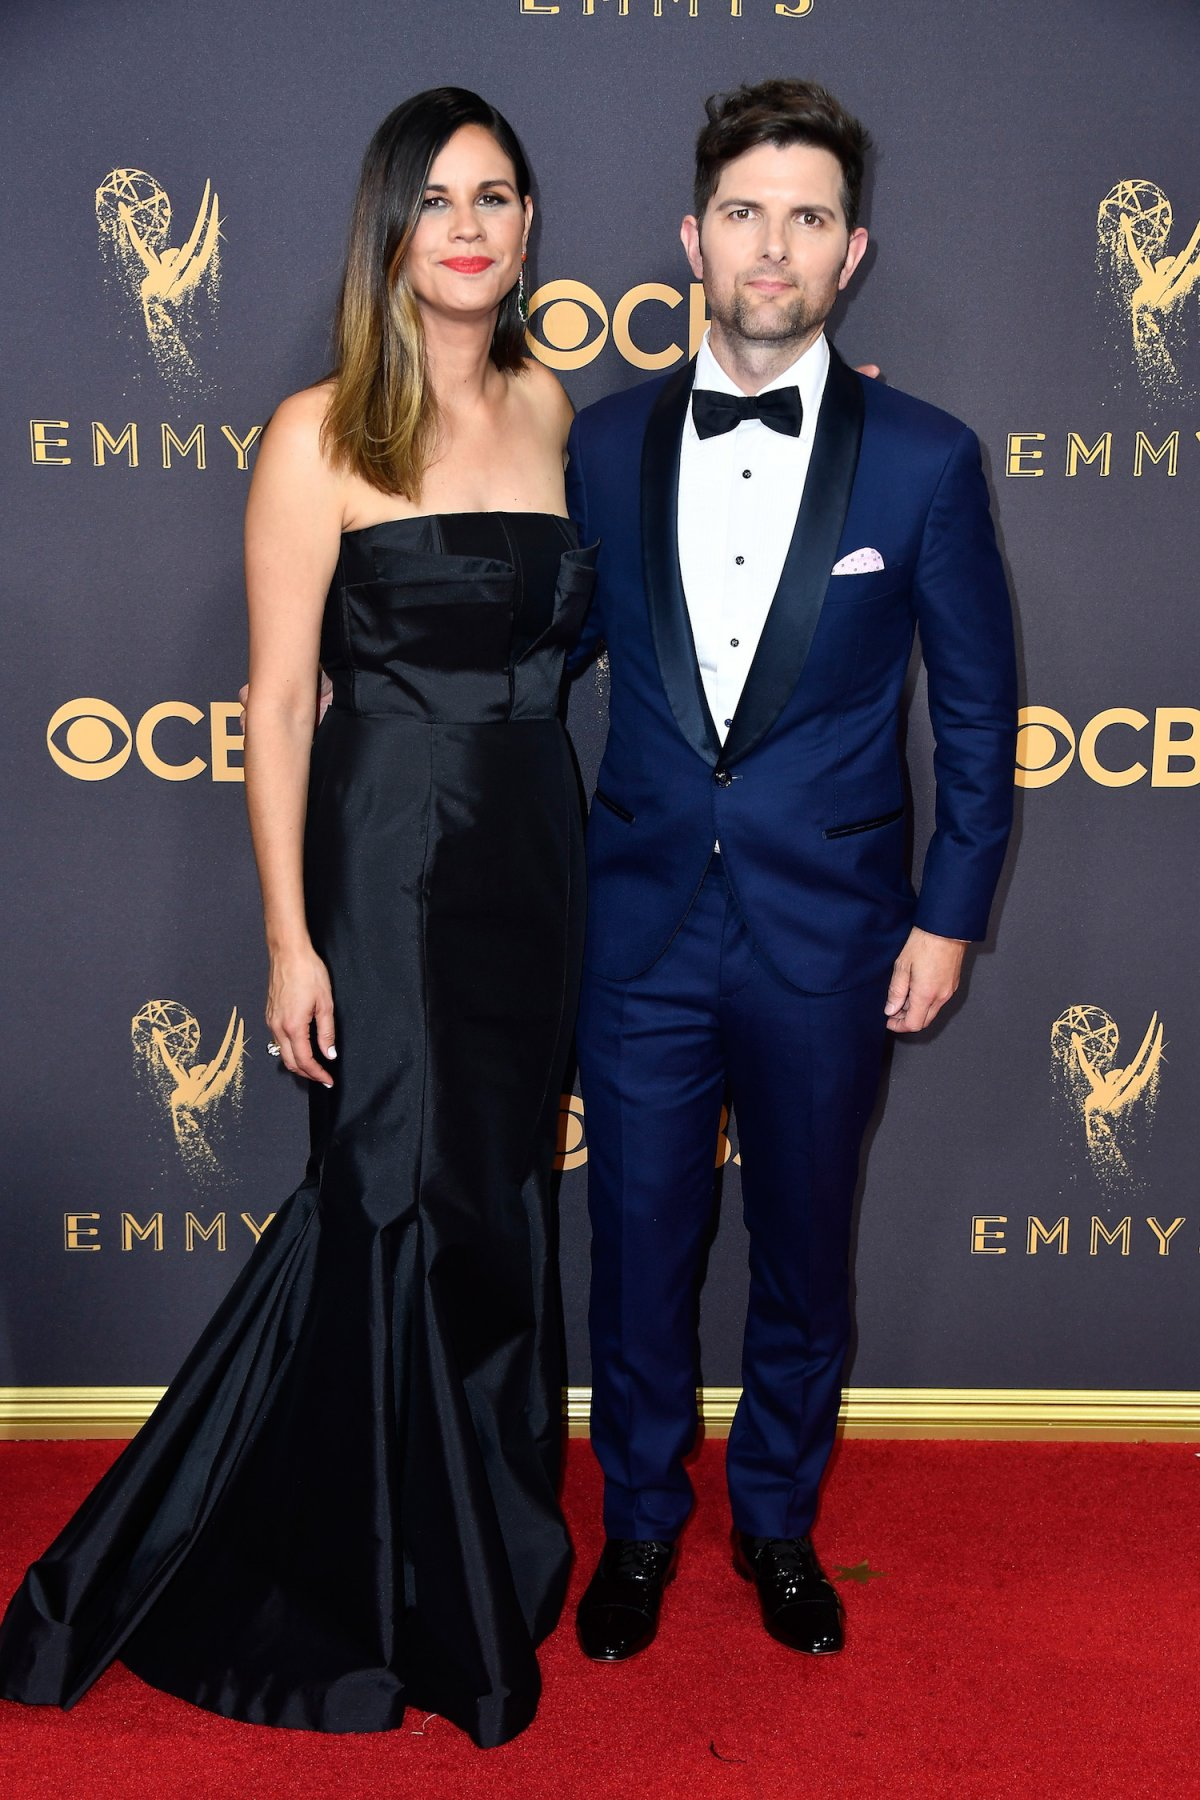 the-good-place-actor-adam-scott-and-wife-naomi-scott-matched-in-navy-ensembles.jpg